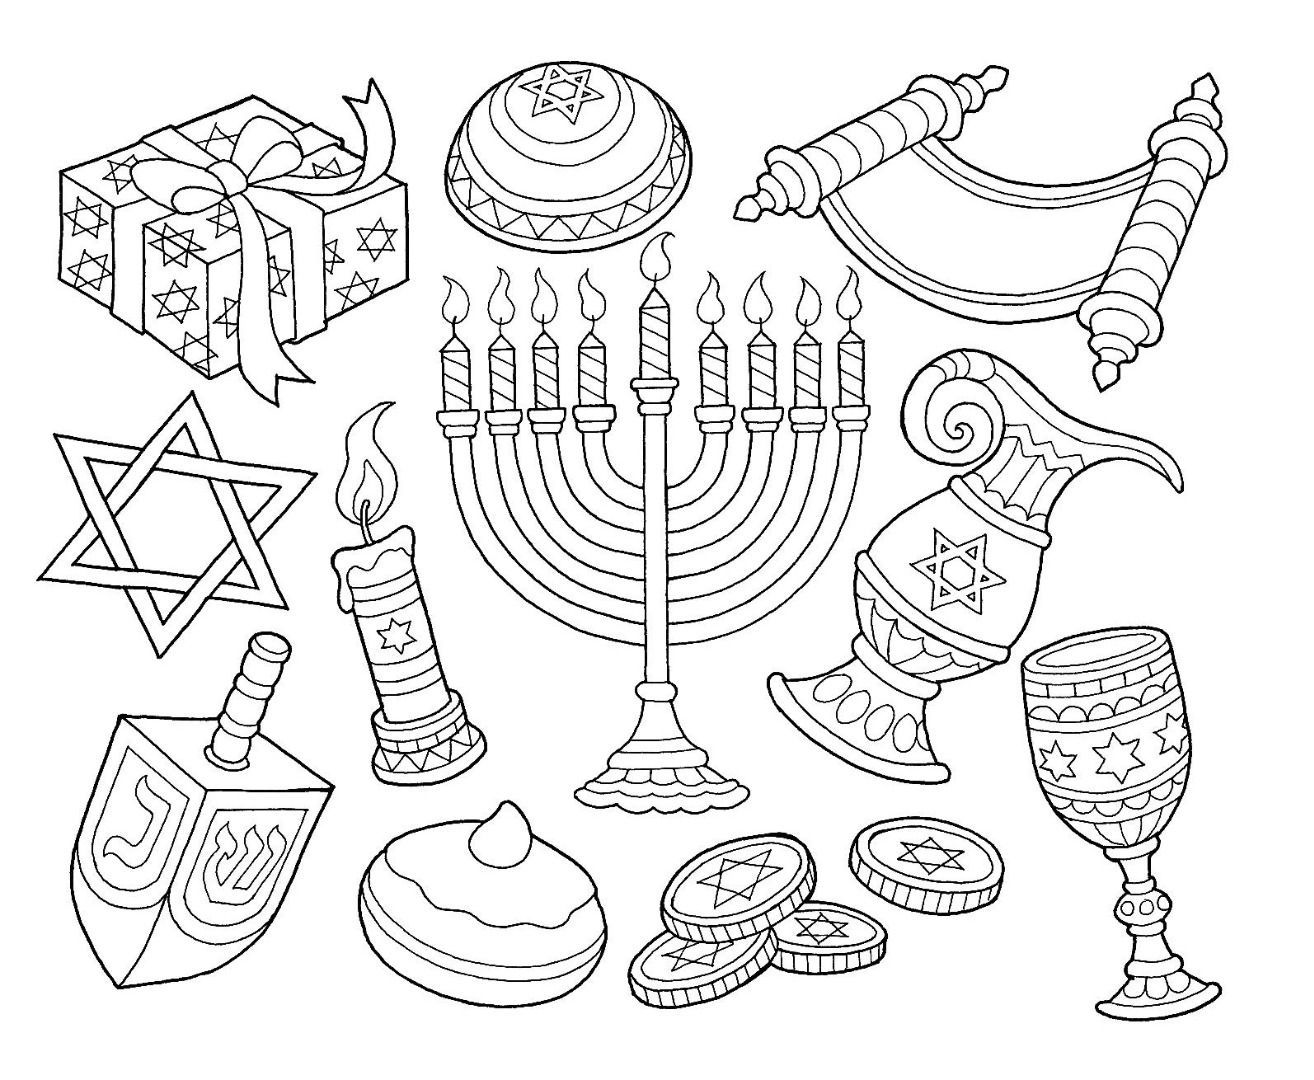 Pin By Debbie Bursley On Hanukkah In 2020 Hanukkah Art Coloring